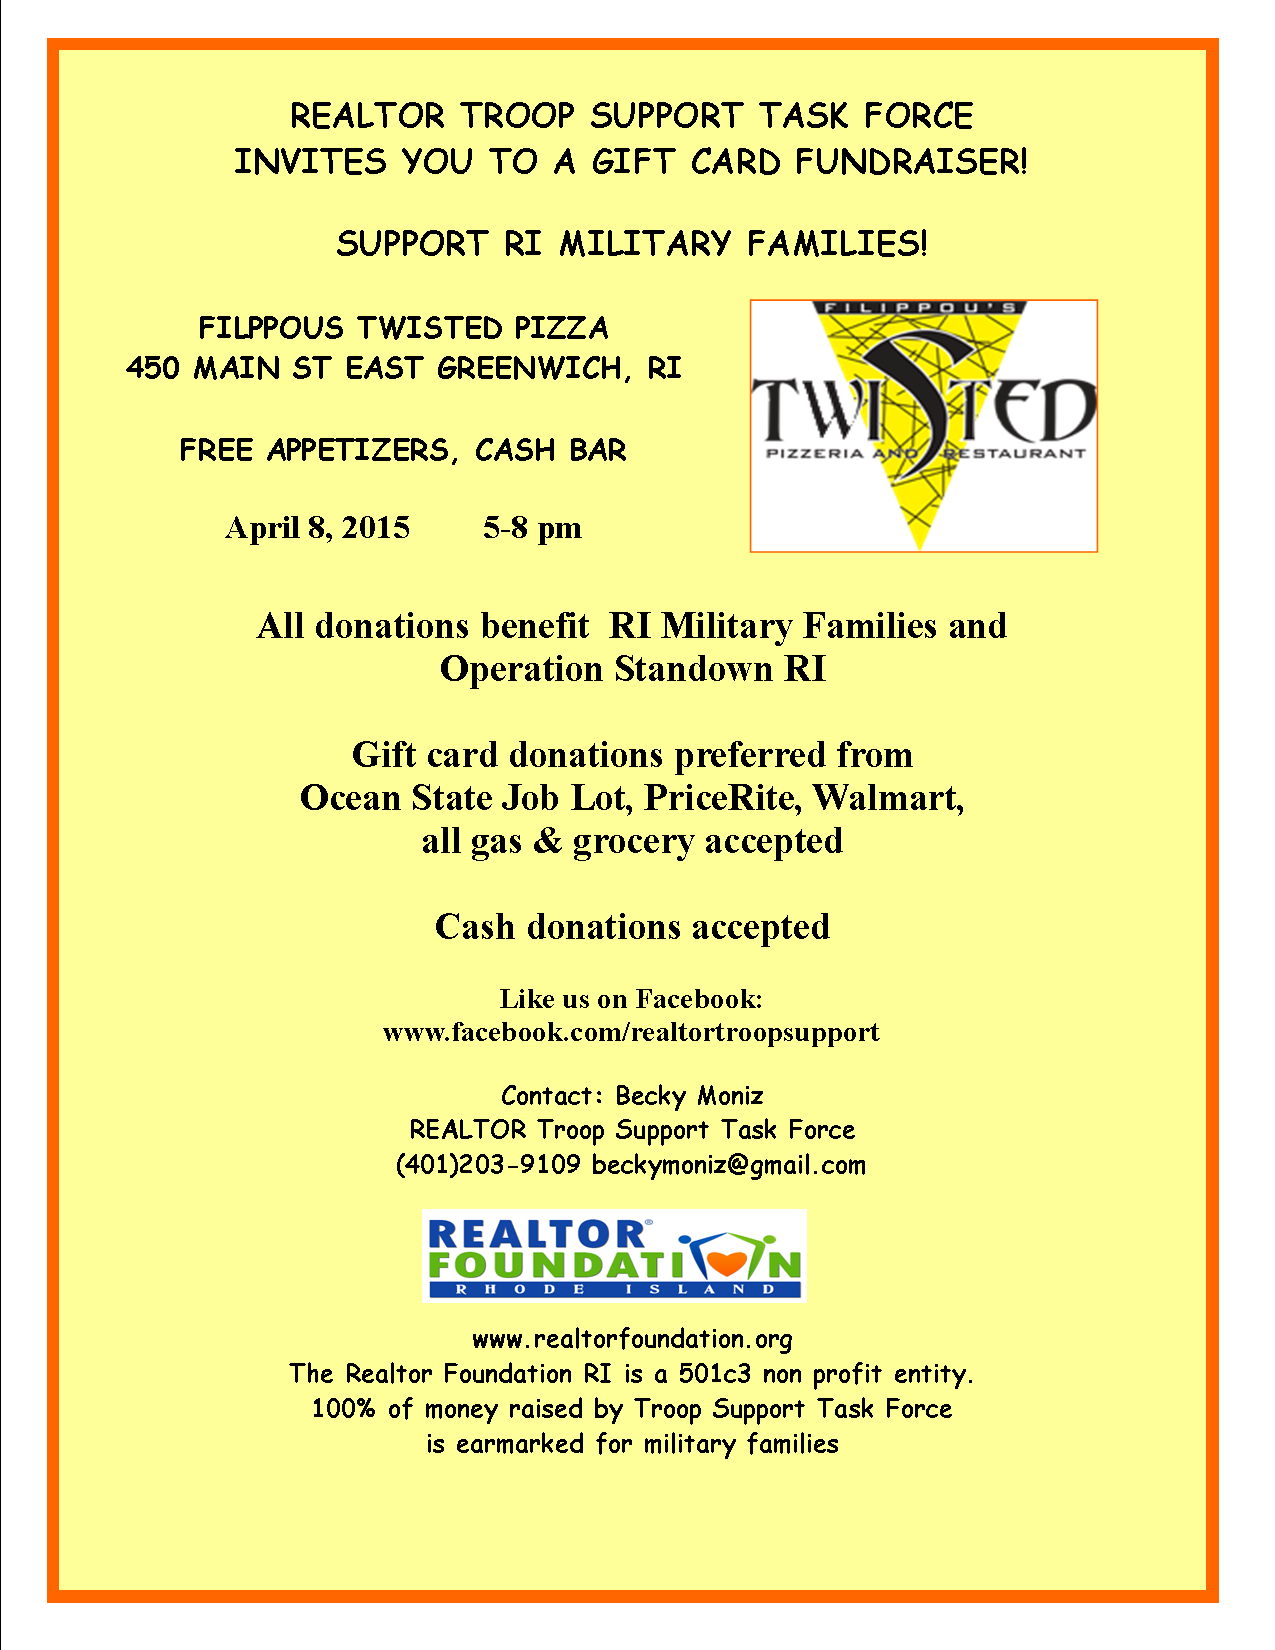 Gift Card fundraiser for Military Families- Filippous Twisted Pizza